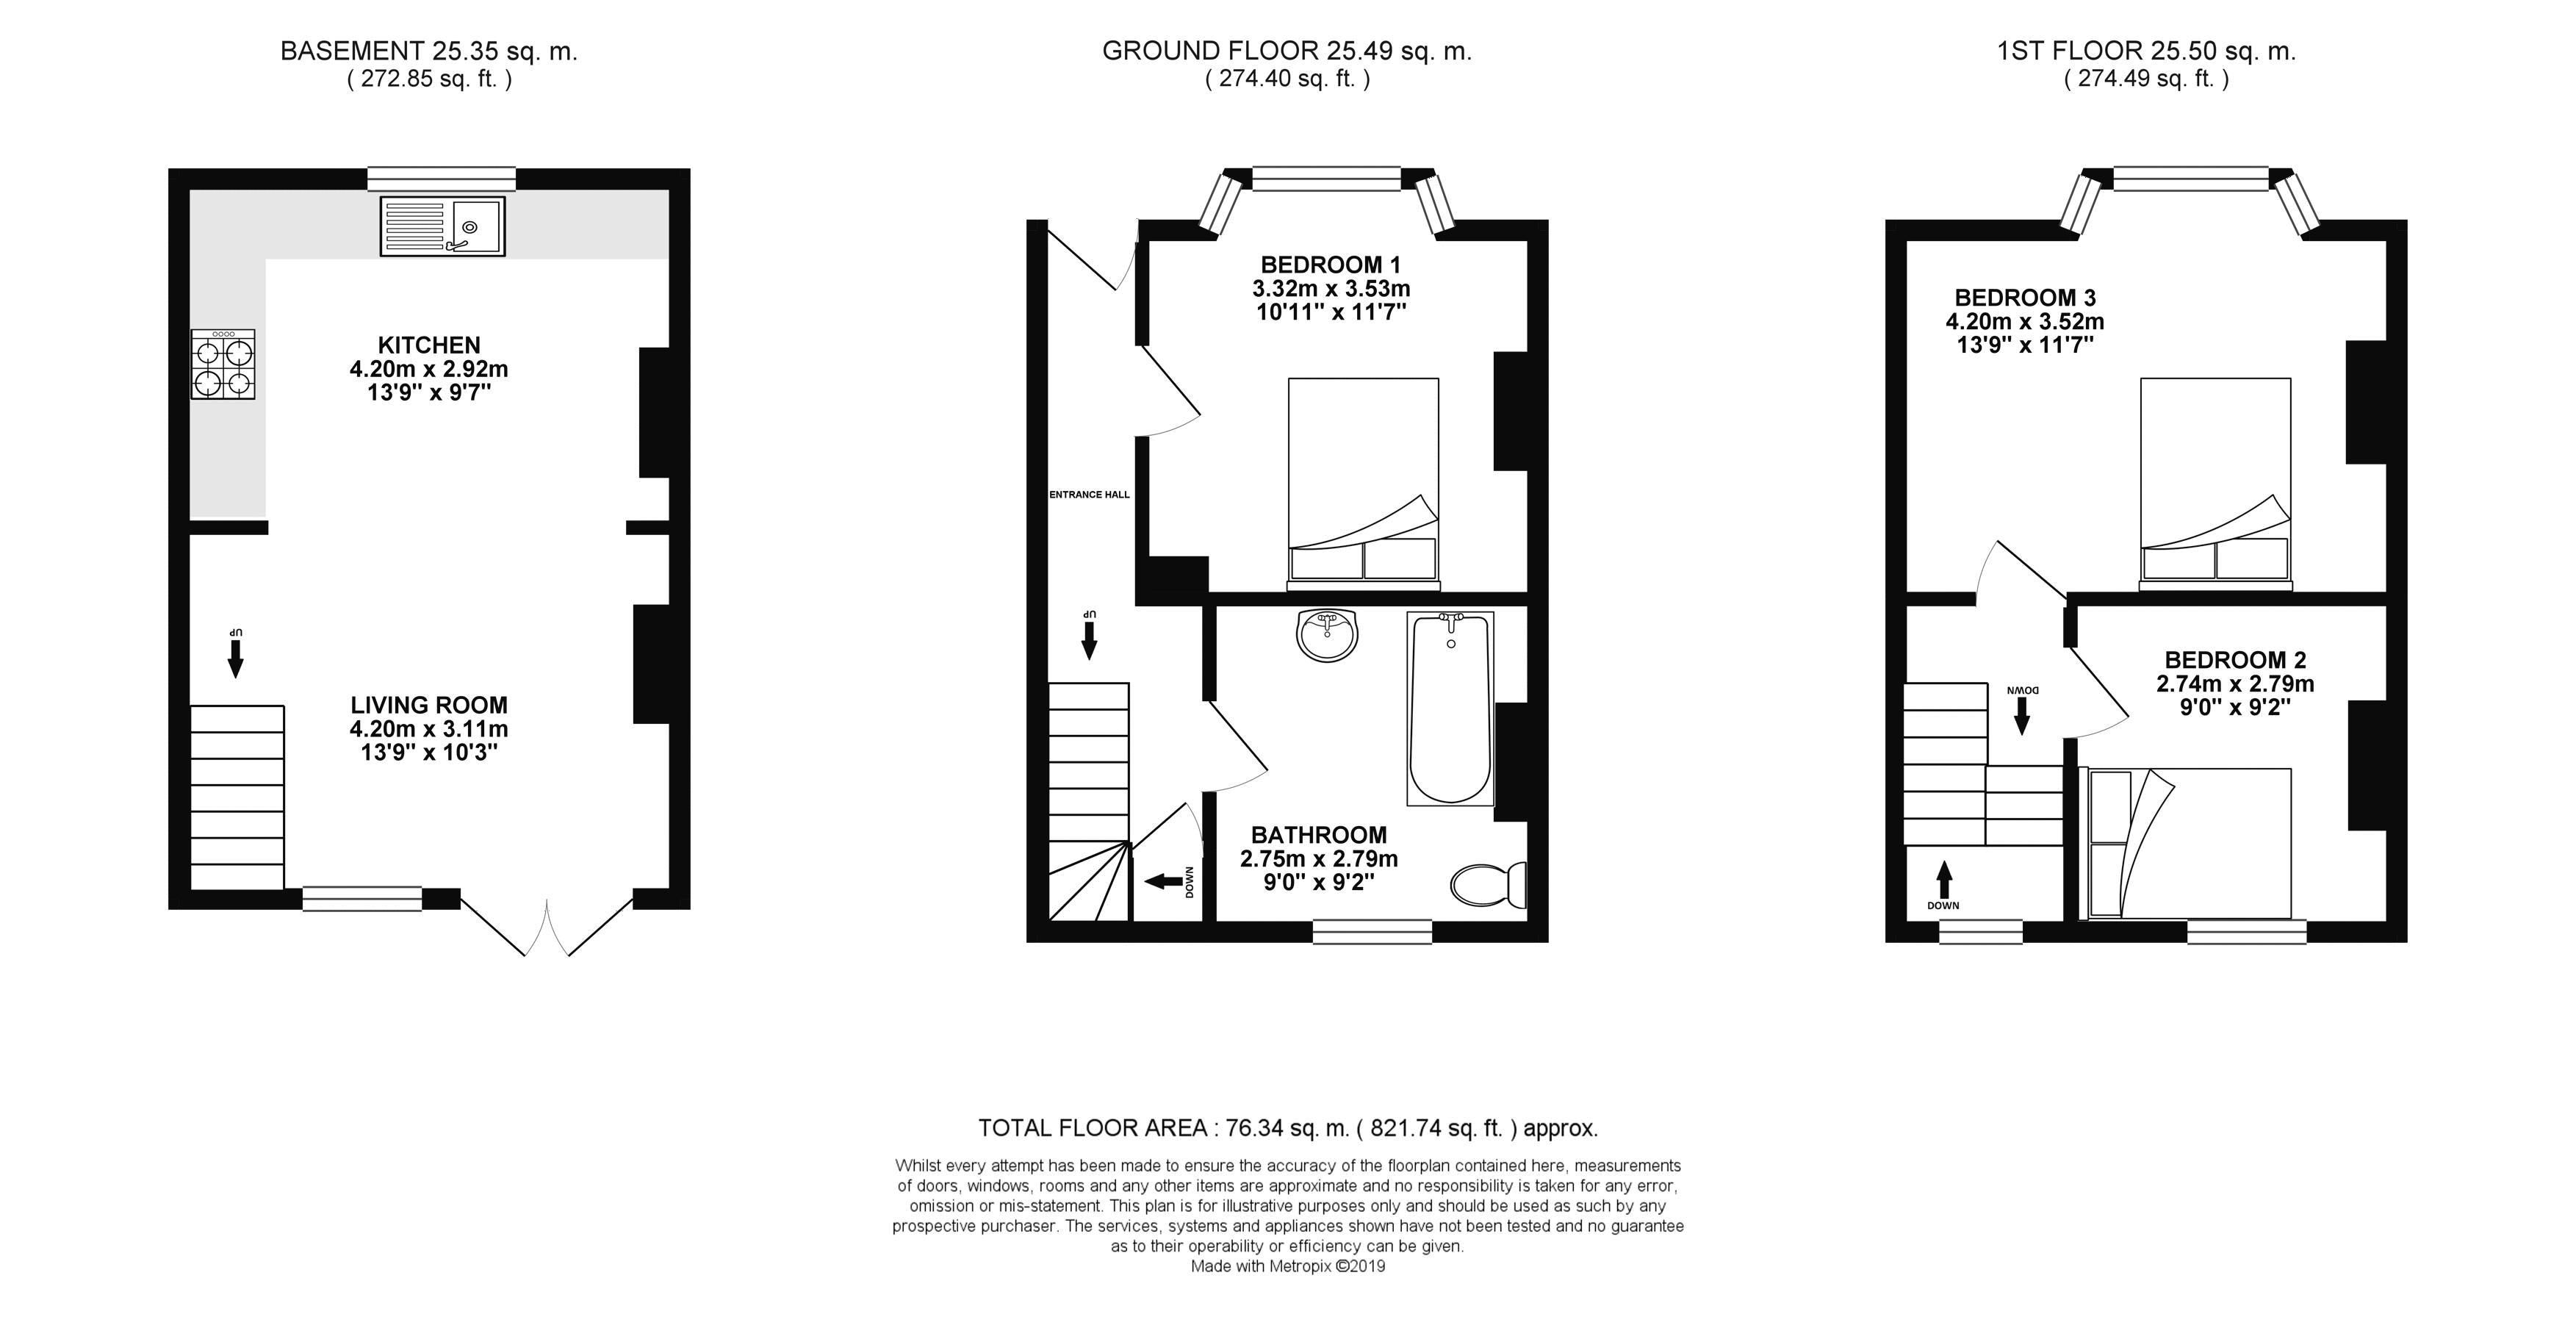 Floor plans for Edinburgh Road, Brighton property for sale in Lewes Road South, Brighton by Coapt